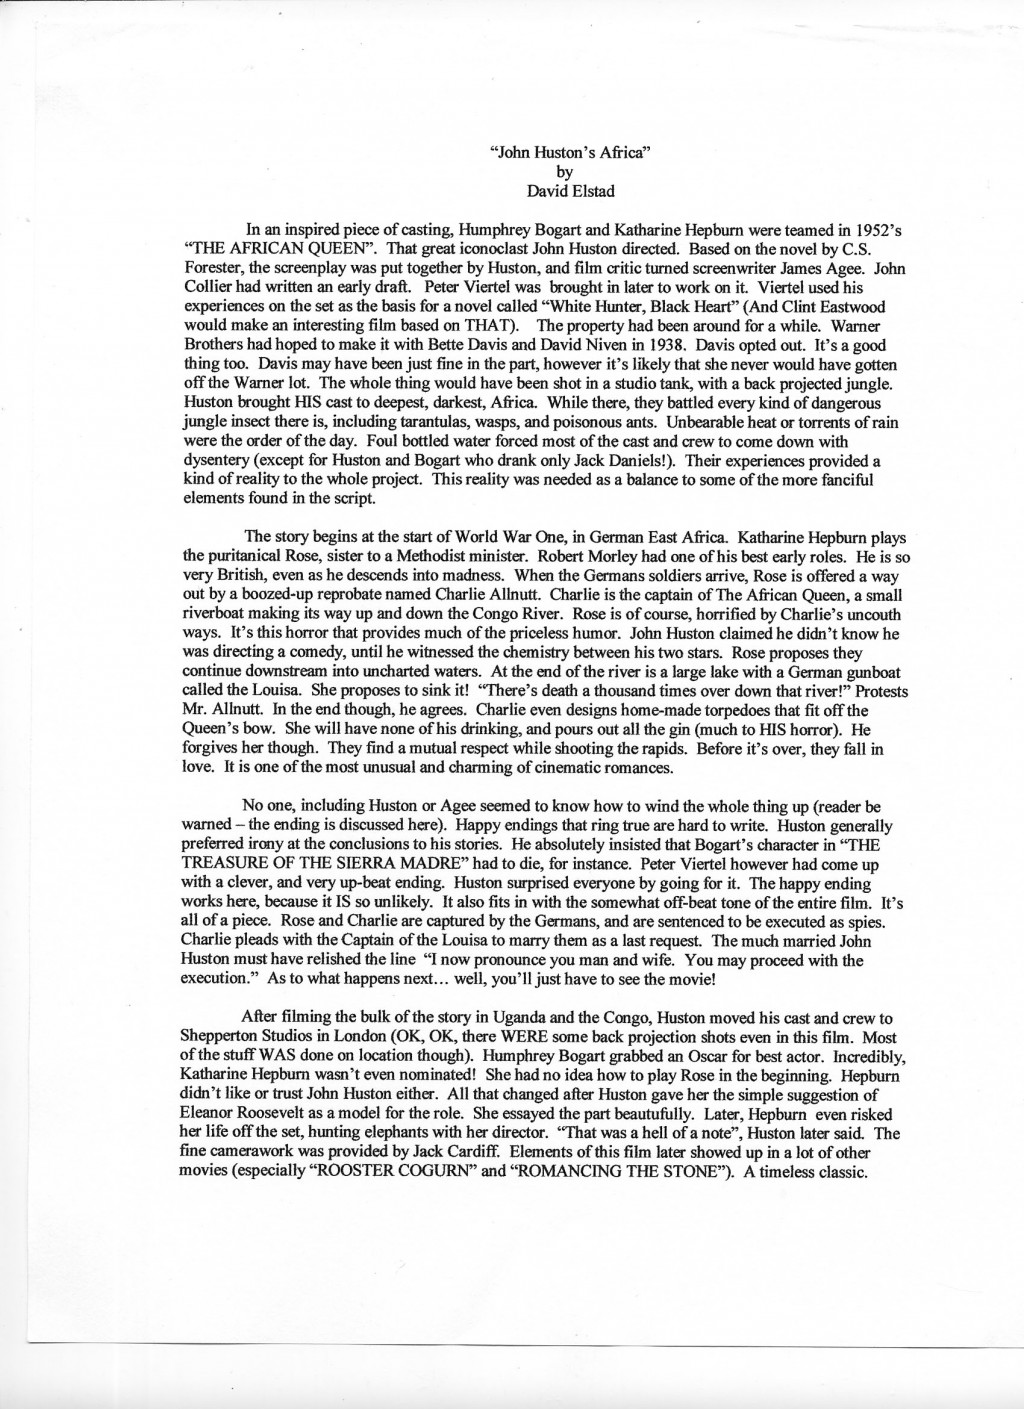 011 Page Essay Example On Terrorism Fearsome 3 Gun Control Double Spaced Word Count Large